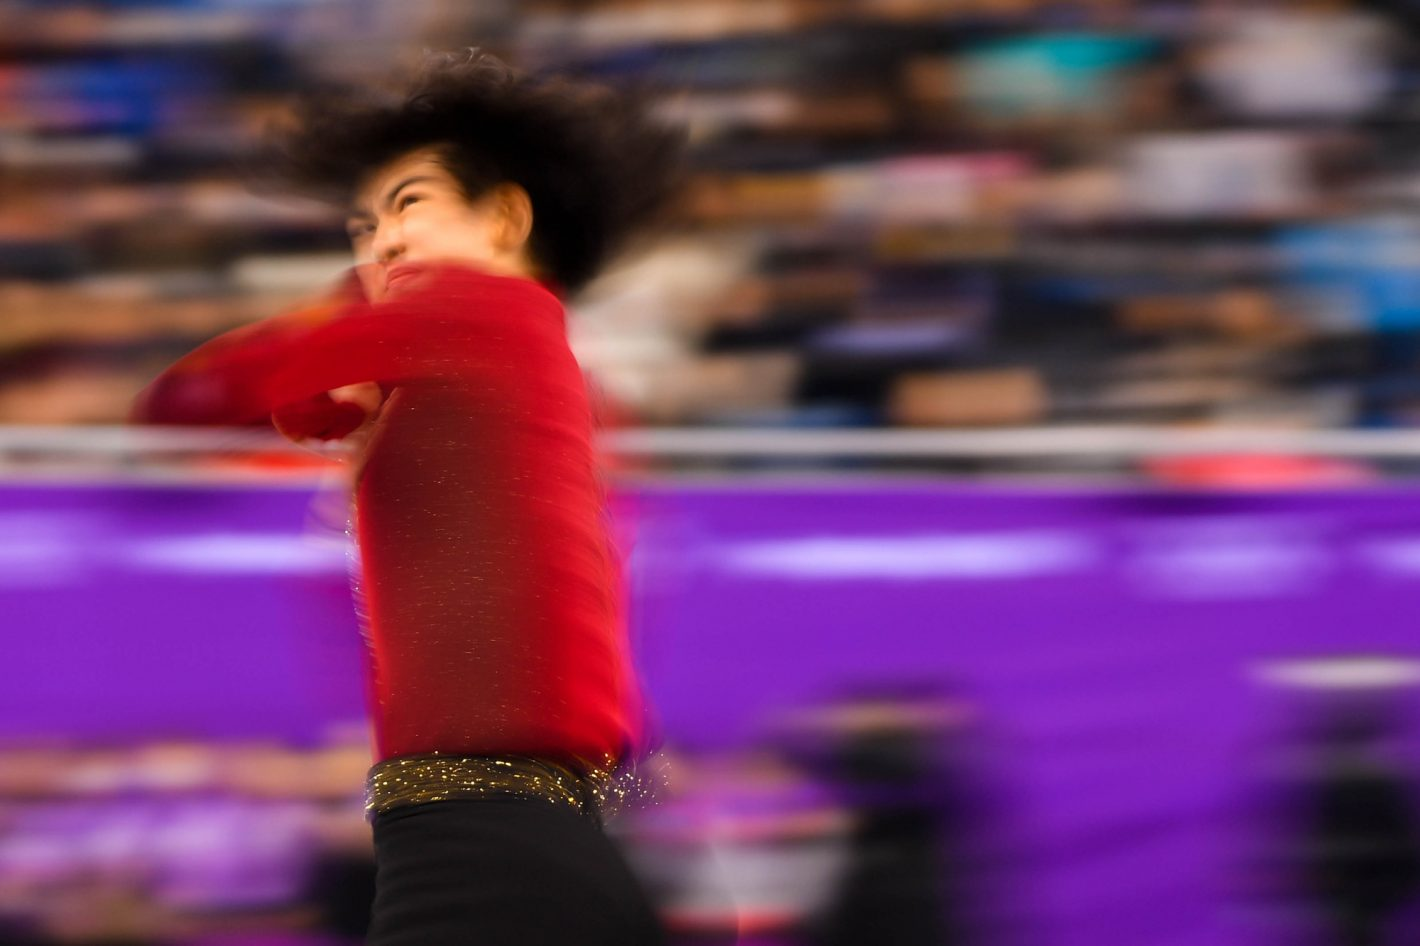 Junhwan Cha (KOR) competes in the men figure skating short program at Gangneung Ice Arena during the PyeongChang 2018 Olympic Winter Games. Nikon D5 | AF-S NIKKOR 200-500mm f/5.6E ED VR | ISO 200 | 1/30 s | f/5.6 Photo by Robert Deutsch-USA TODAY Sports